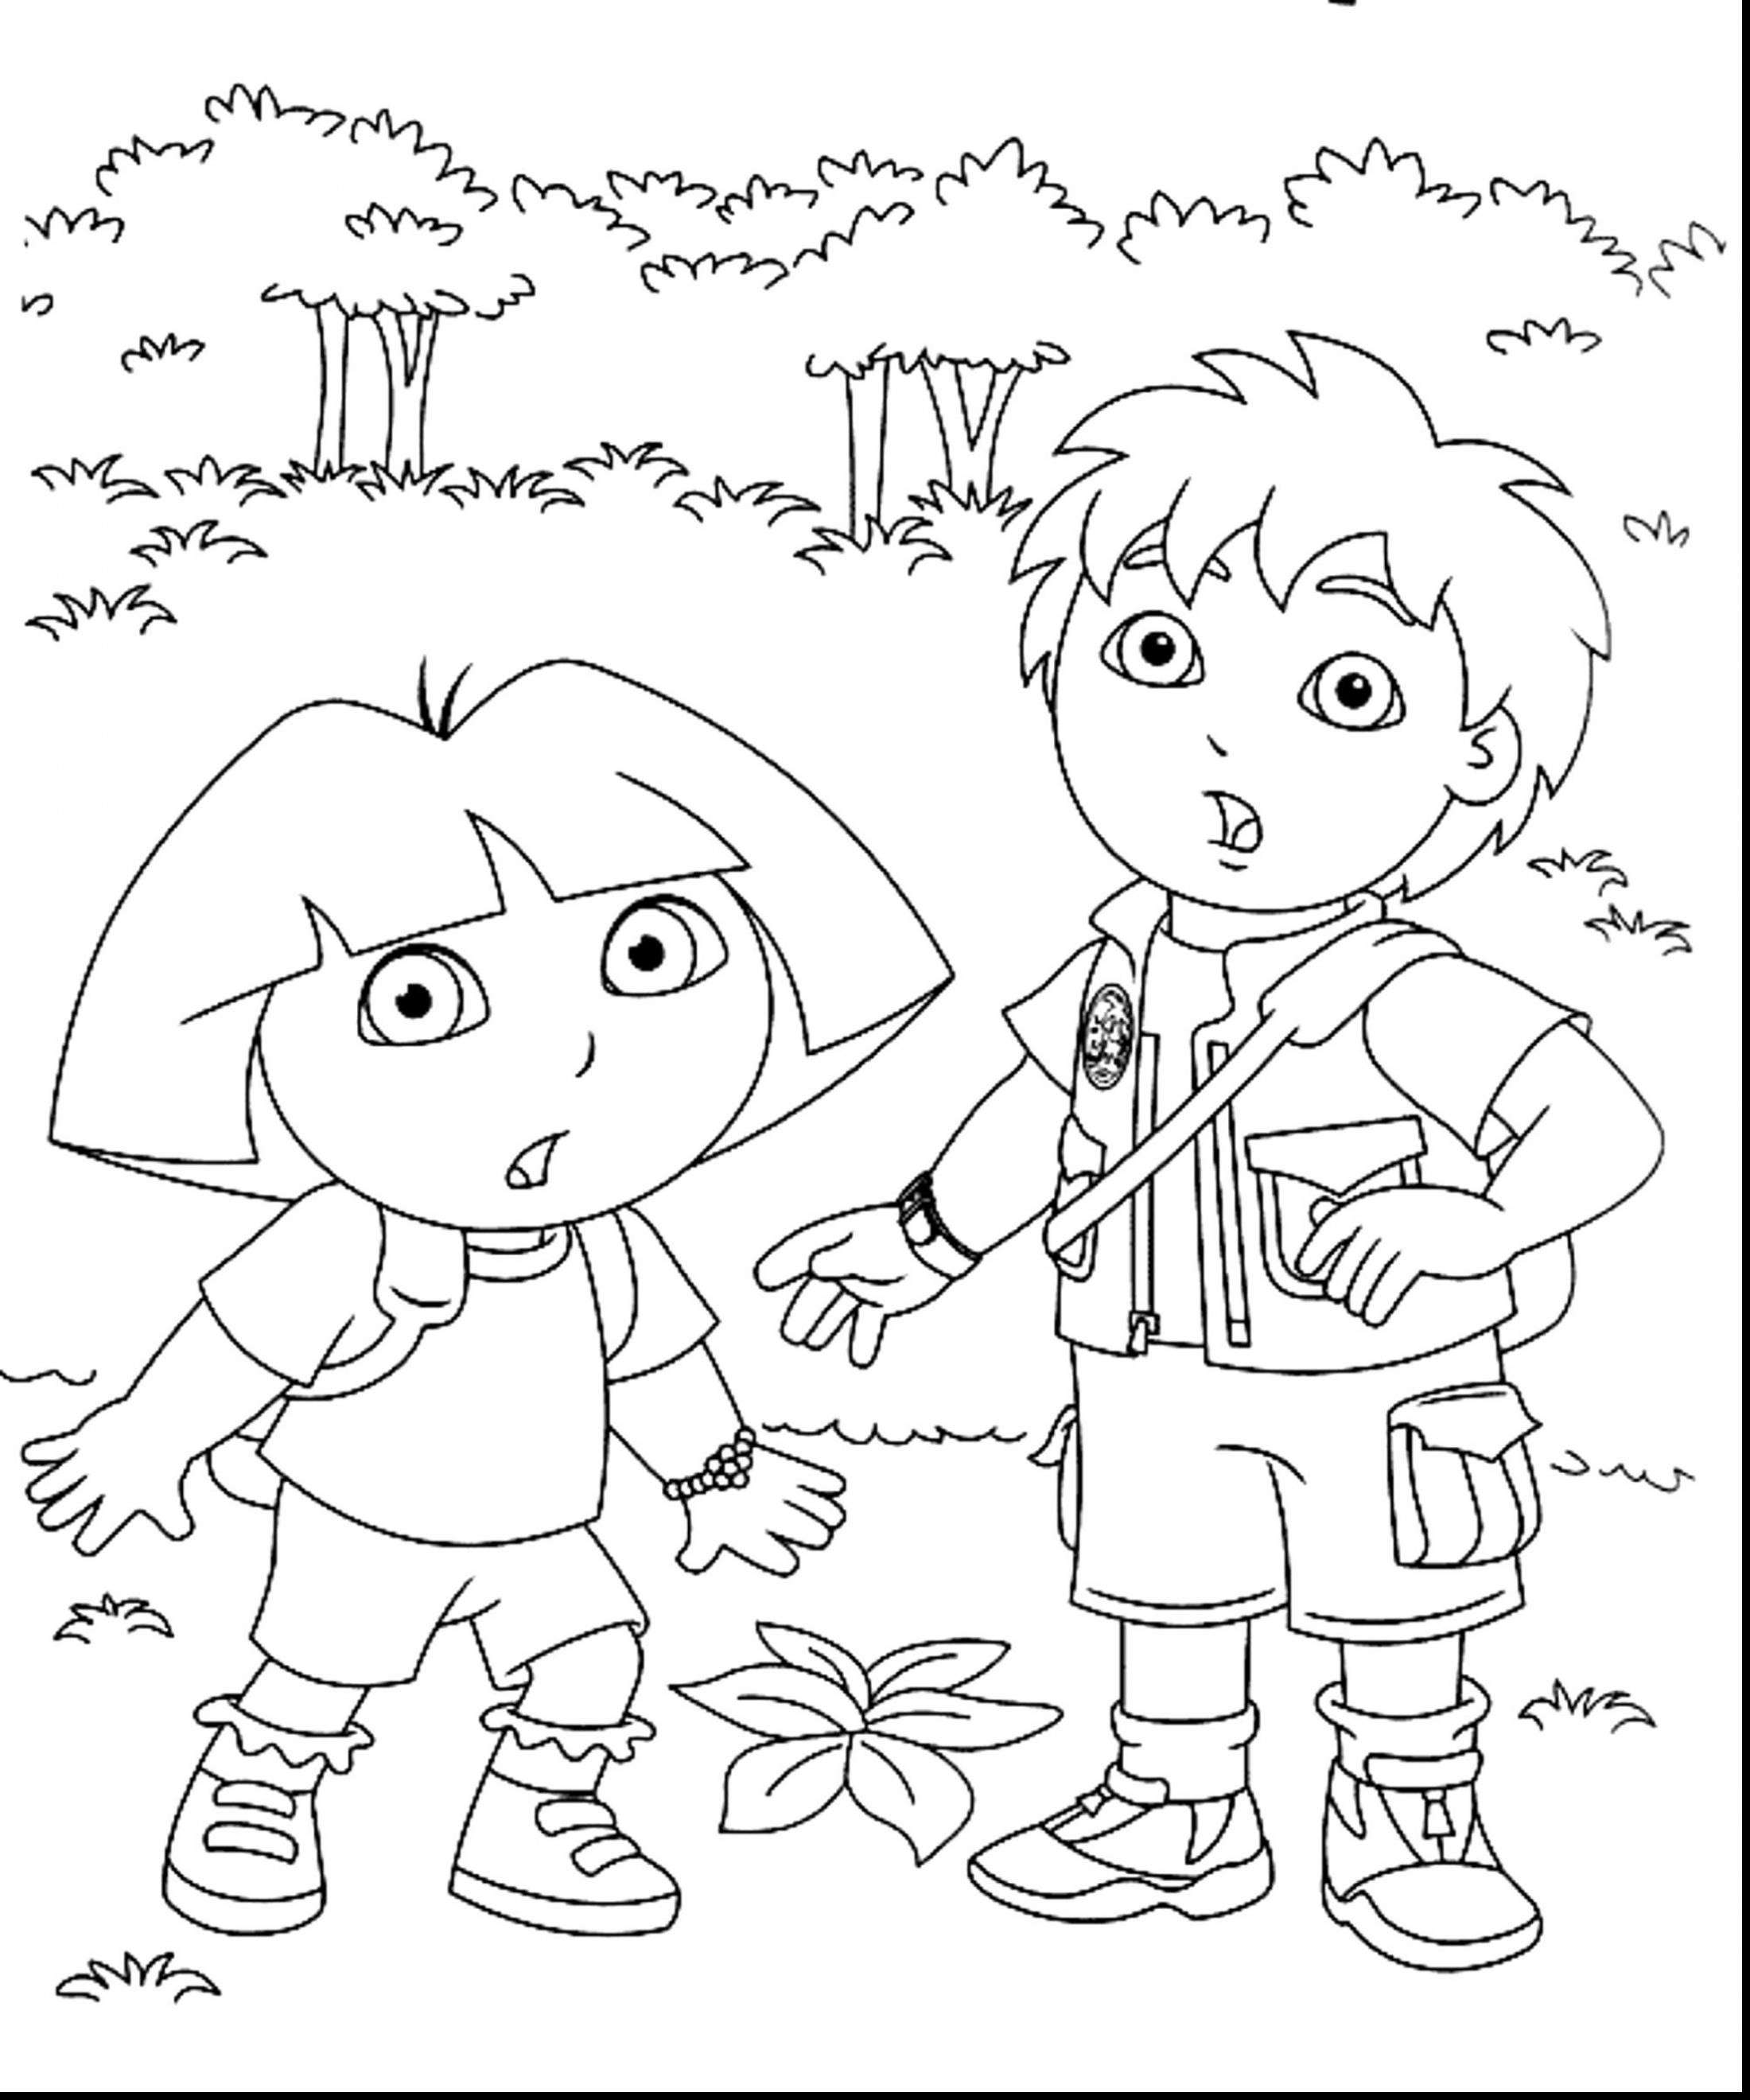 Nick Jr Christmas Coloring Pages With Dora Team Umizoomi